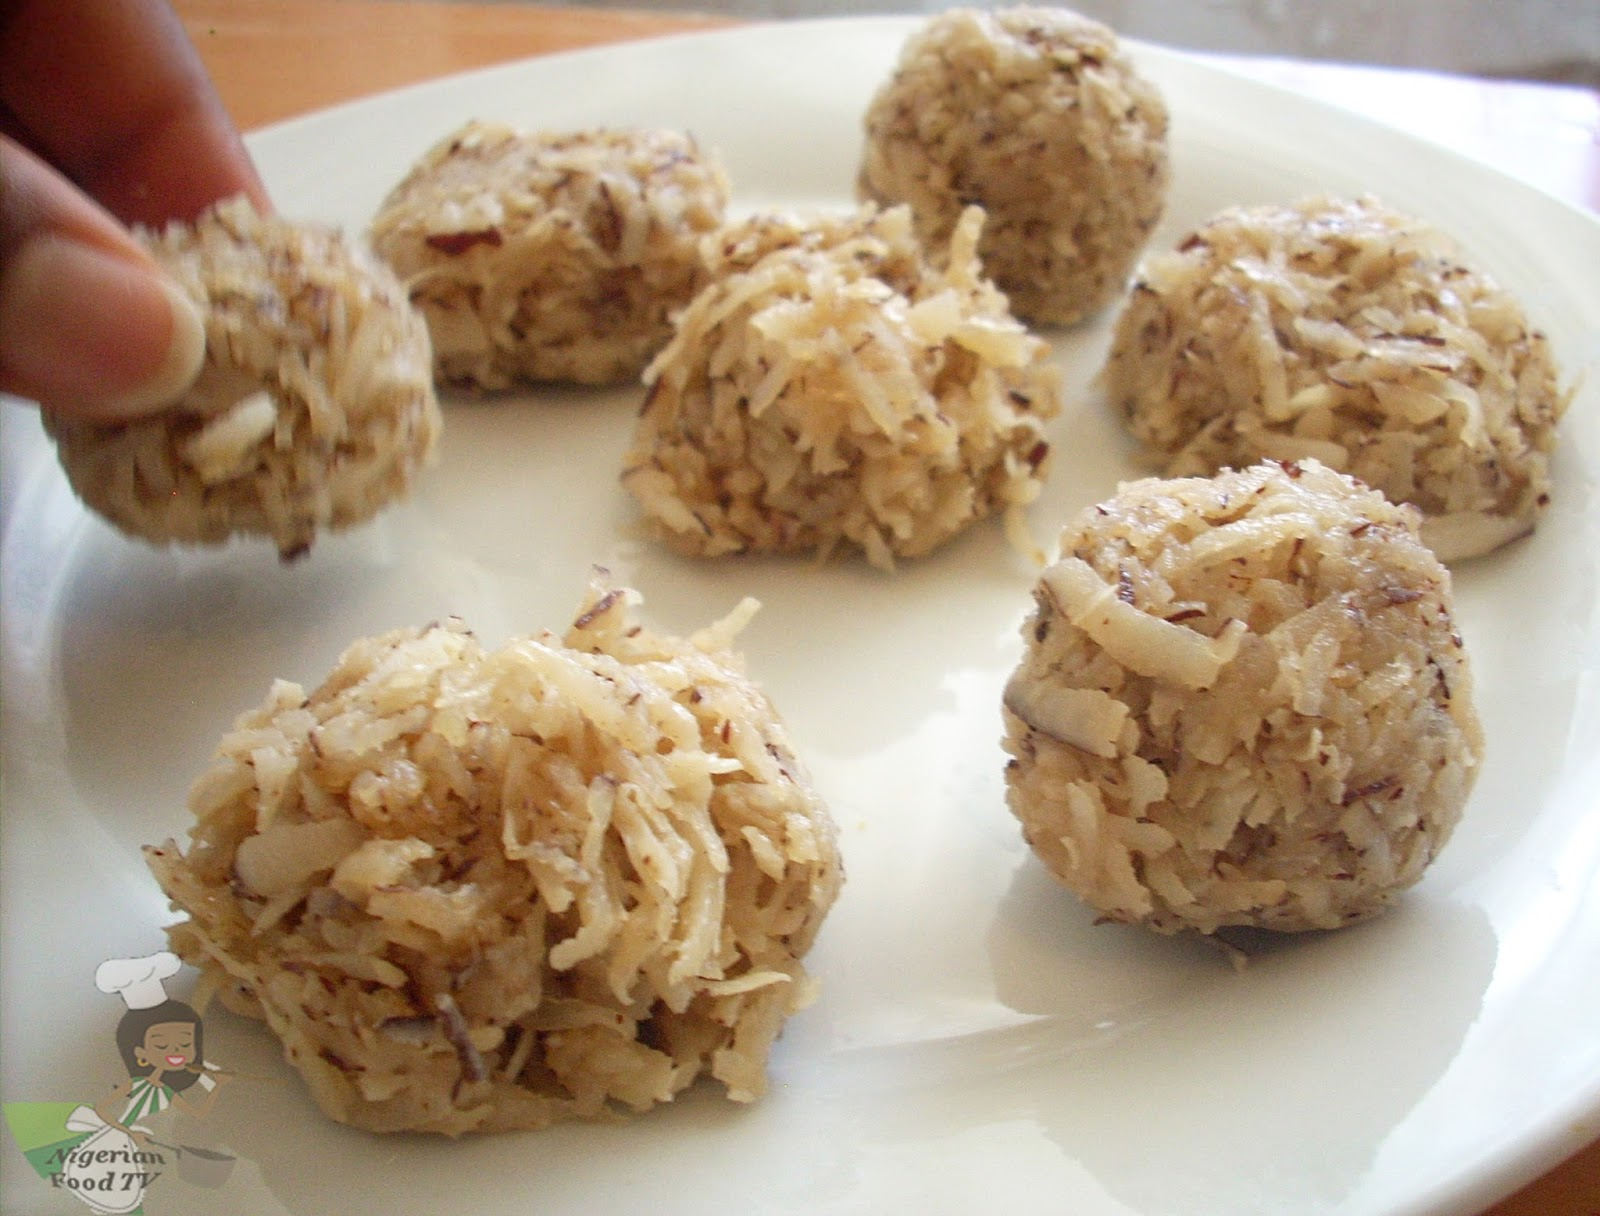 Nigerian Coconut Candy, how to make Nigerian Coconut Candy, Coconut candy, chancacas